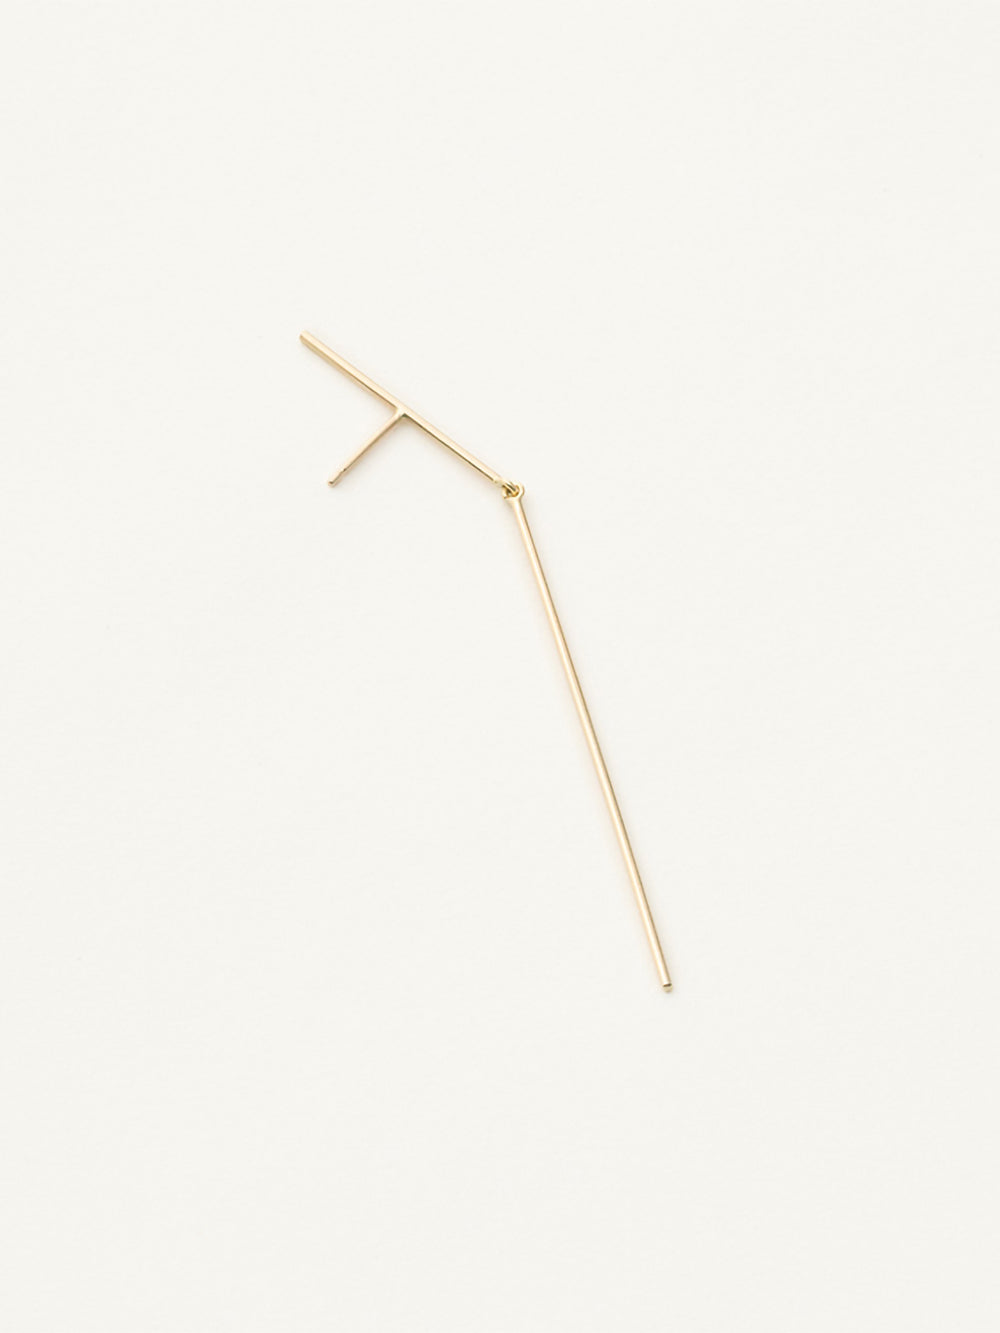 kathleen whitaker gold stick + strand earring